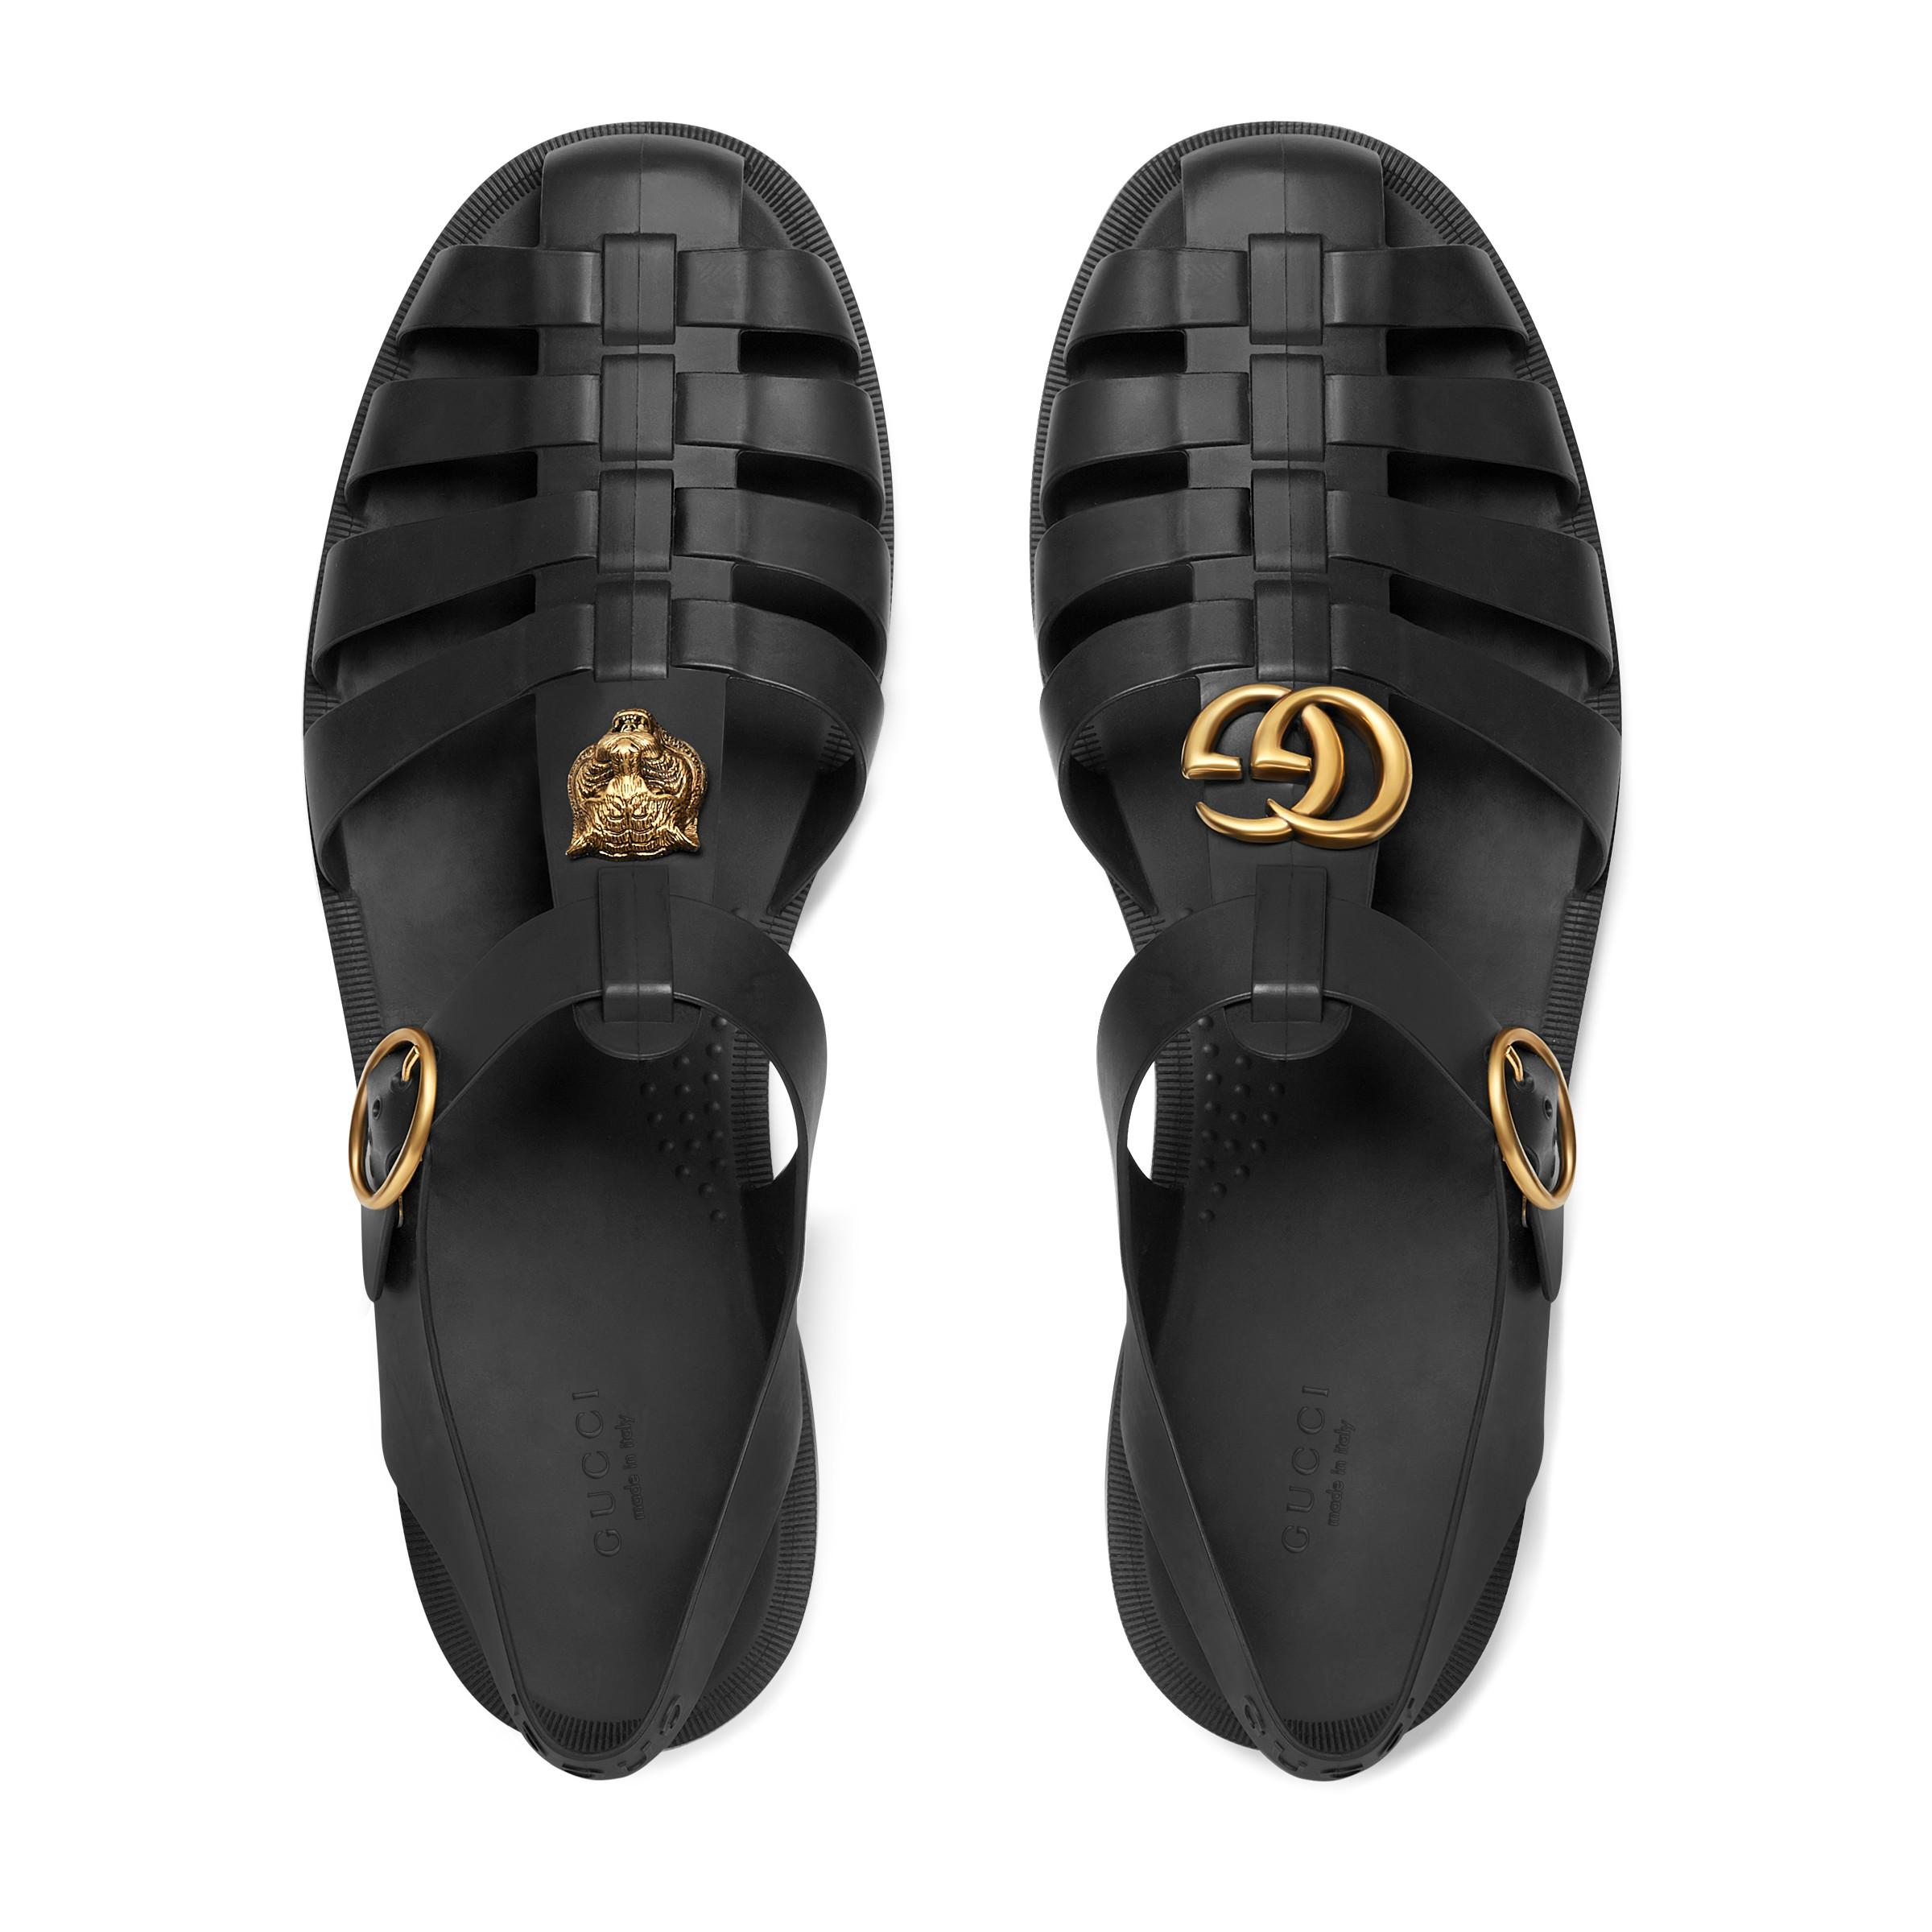 1db5ece631be Gucci - Black Rubber Buckle Strap Sandal for Men - Lyst. View fullscreen